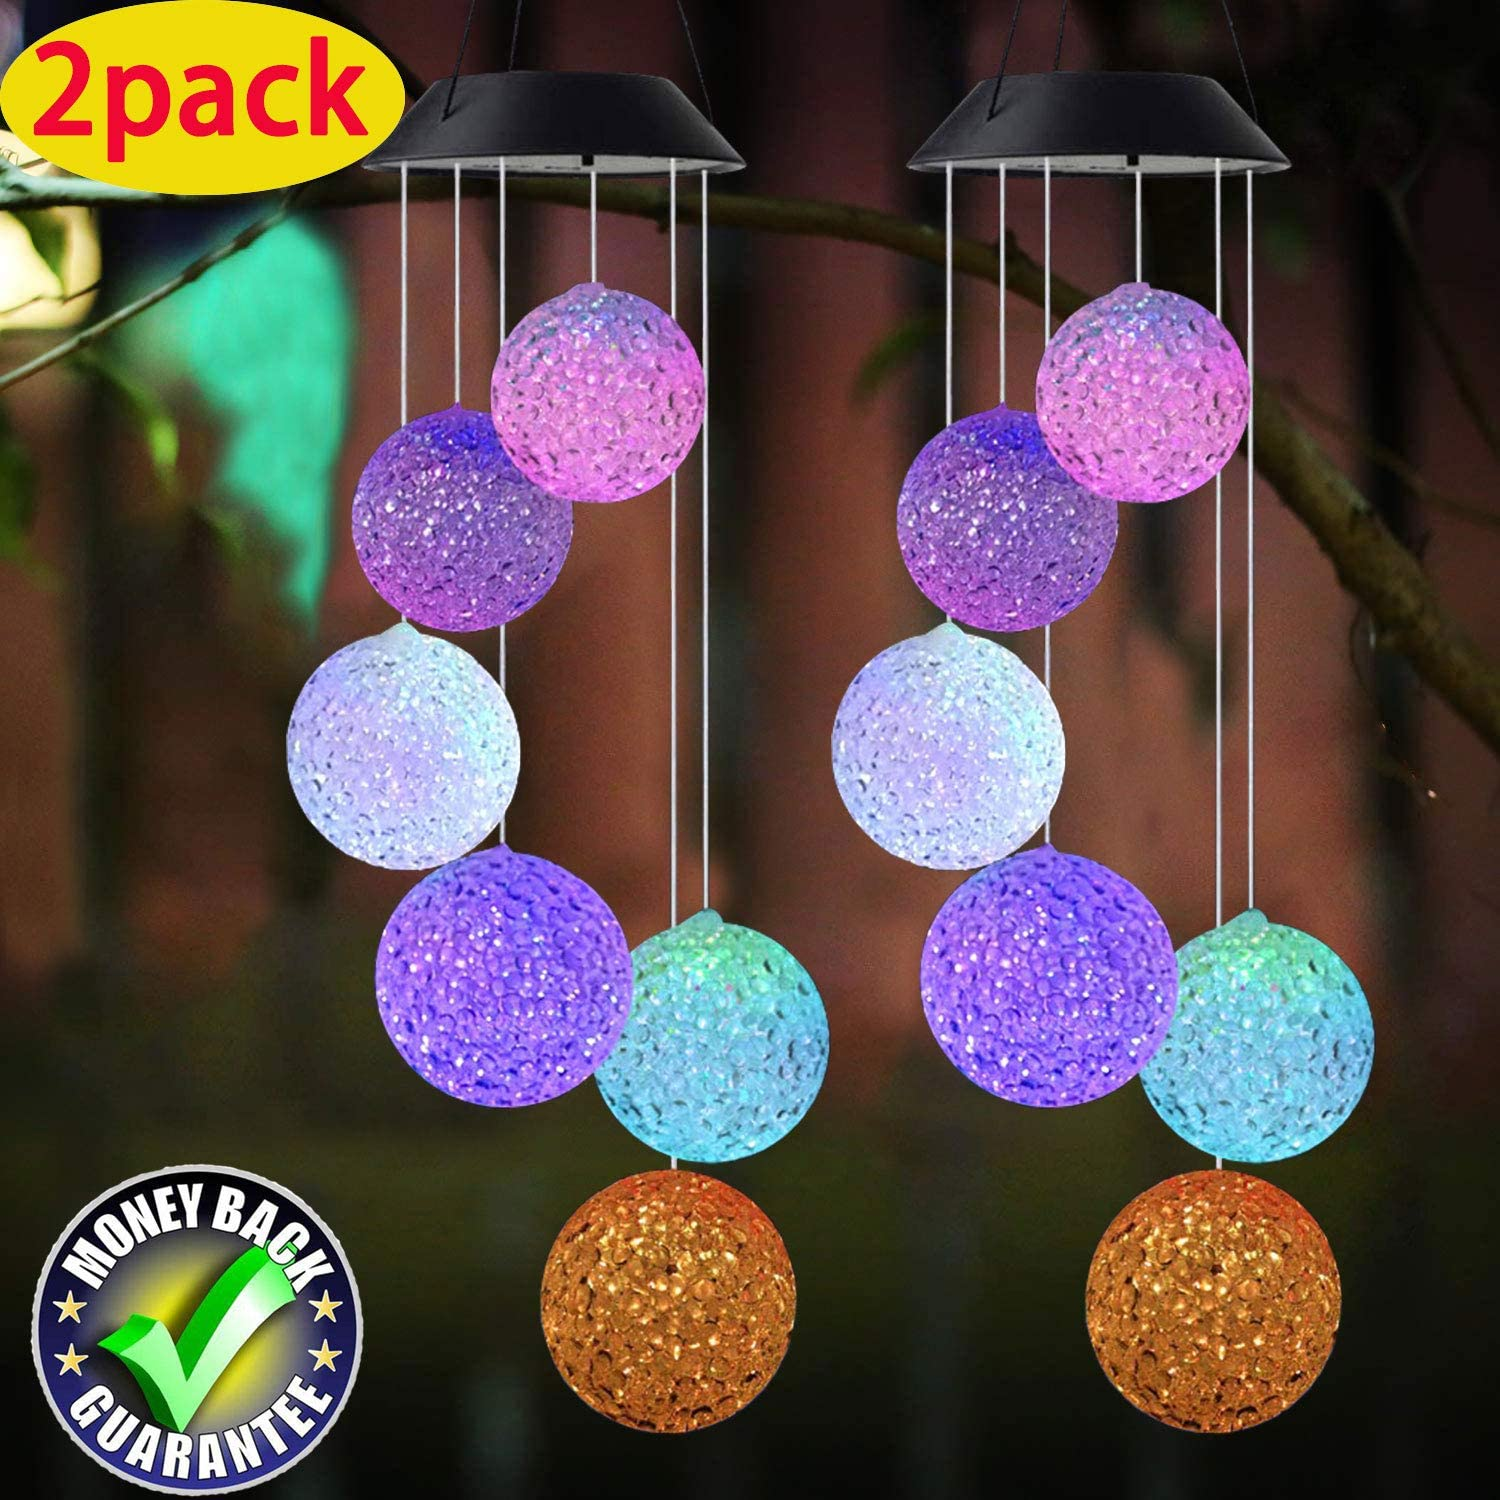 Wind chimes Color Changing Solar Power Wind Chime Crystal Ball Wind chimes Mobile Portable Waterproof Outdoor Decorative Romantic Wind Bell Light for Patio Yard Garden Home (2 pack Crystal Ball) : Garden & Outdoor